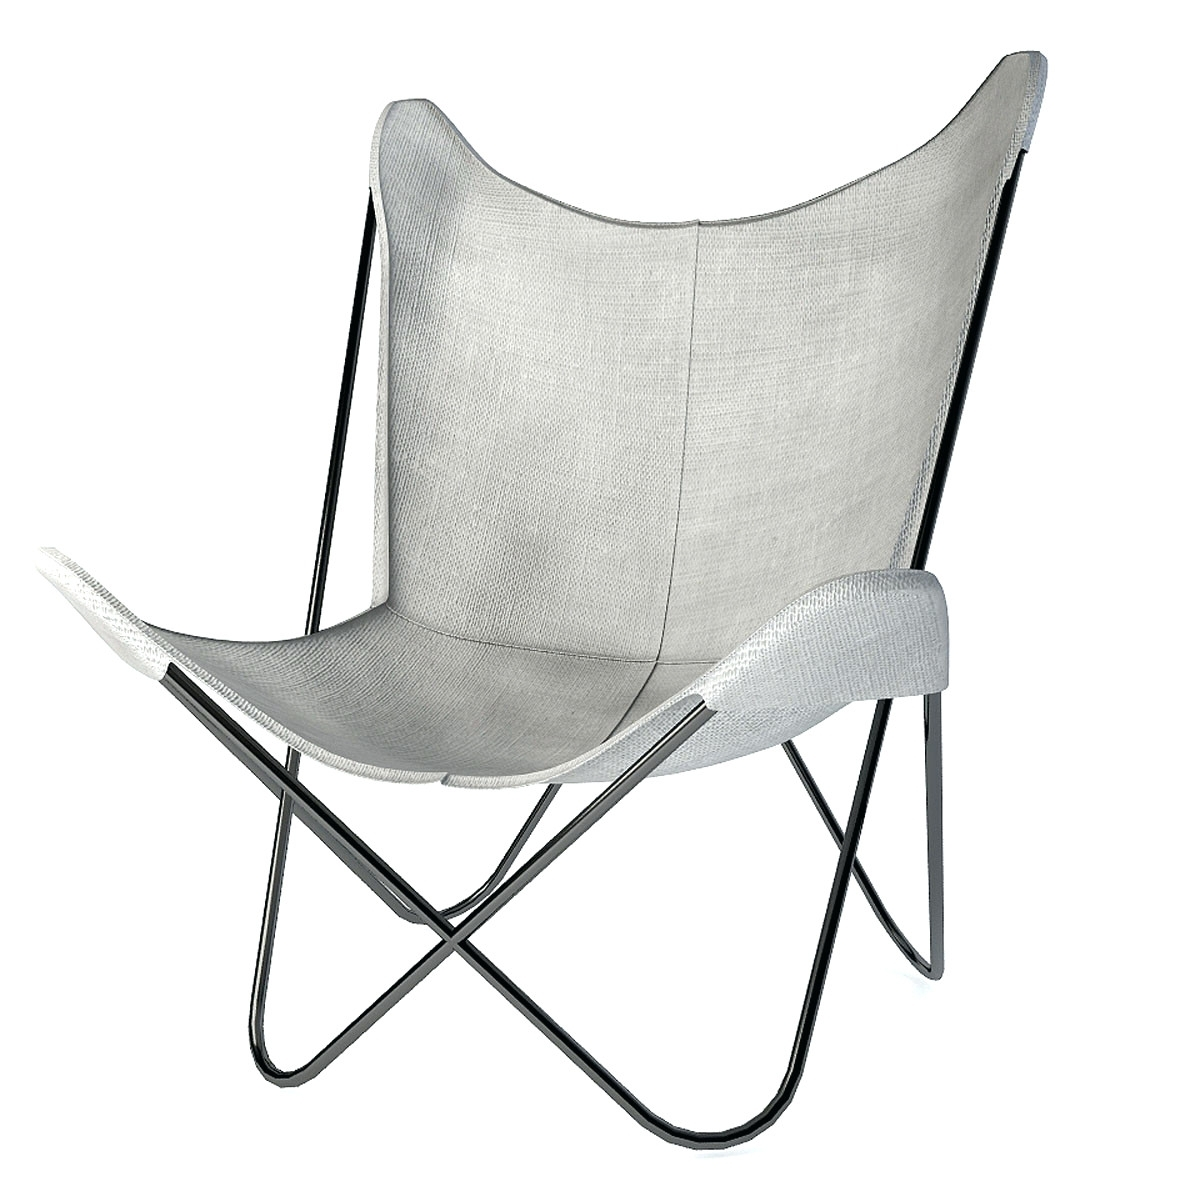 Chaise Lounge Chairs At Kohls For Preferred Kohl's Student Lounge Butterfly Chair • Lounge Chairs Ideas (View 4 of 15)